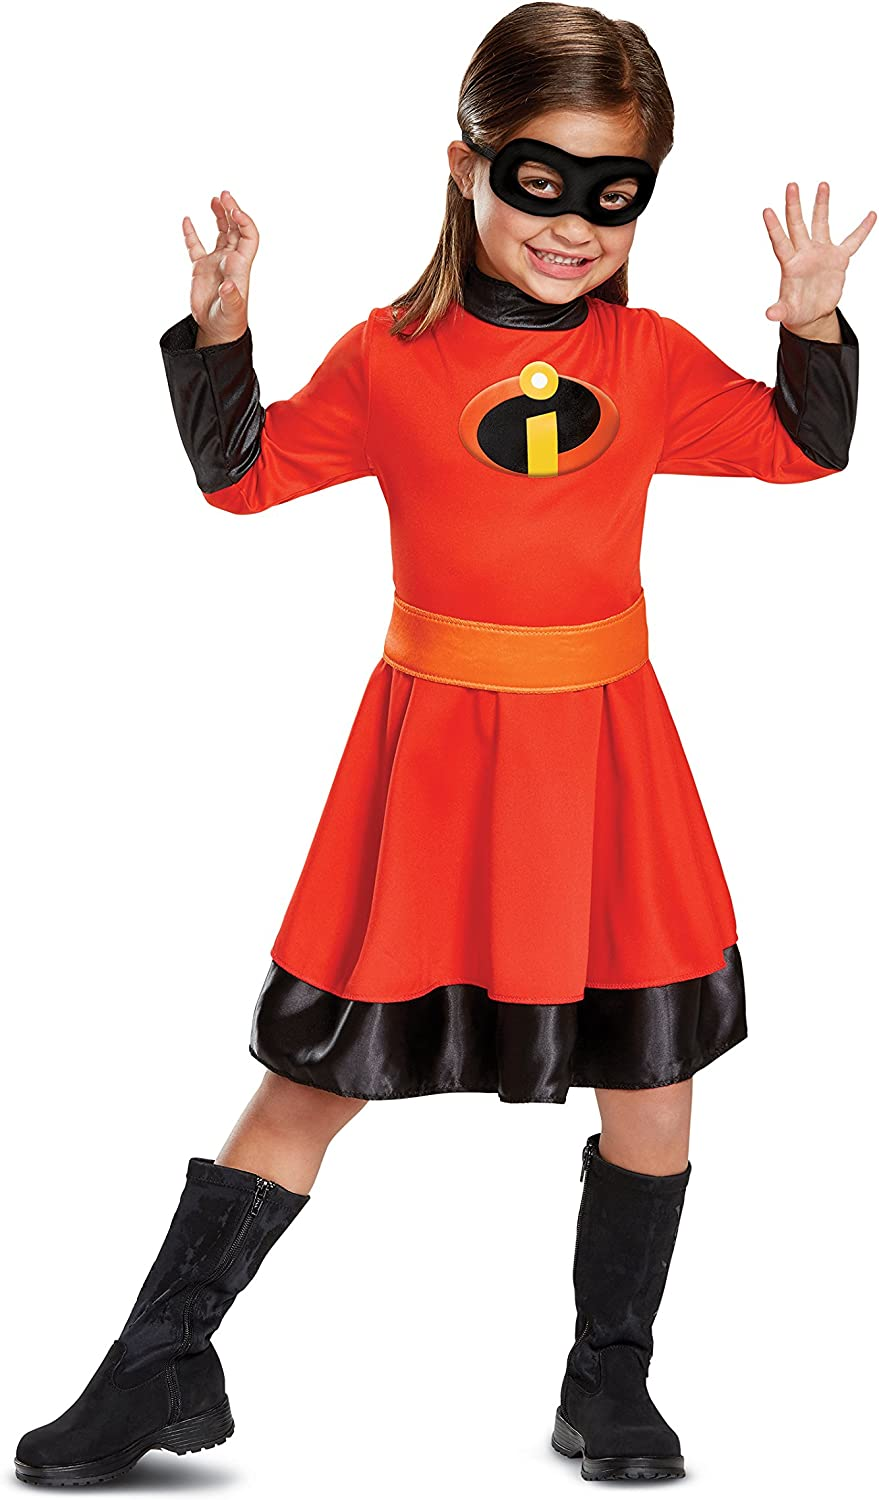 Incredibles 2 Max 84% OFF Violet Classic 40% OFF Cheap Sale Toddler Costume